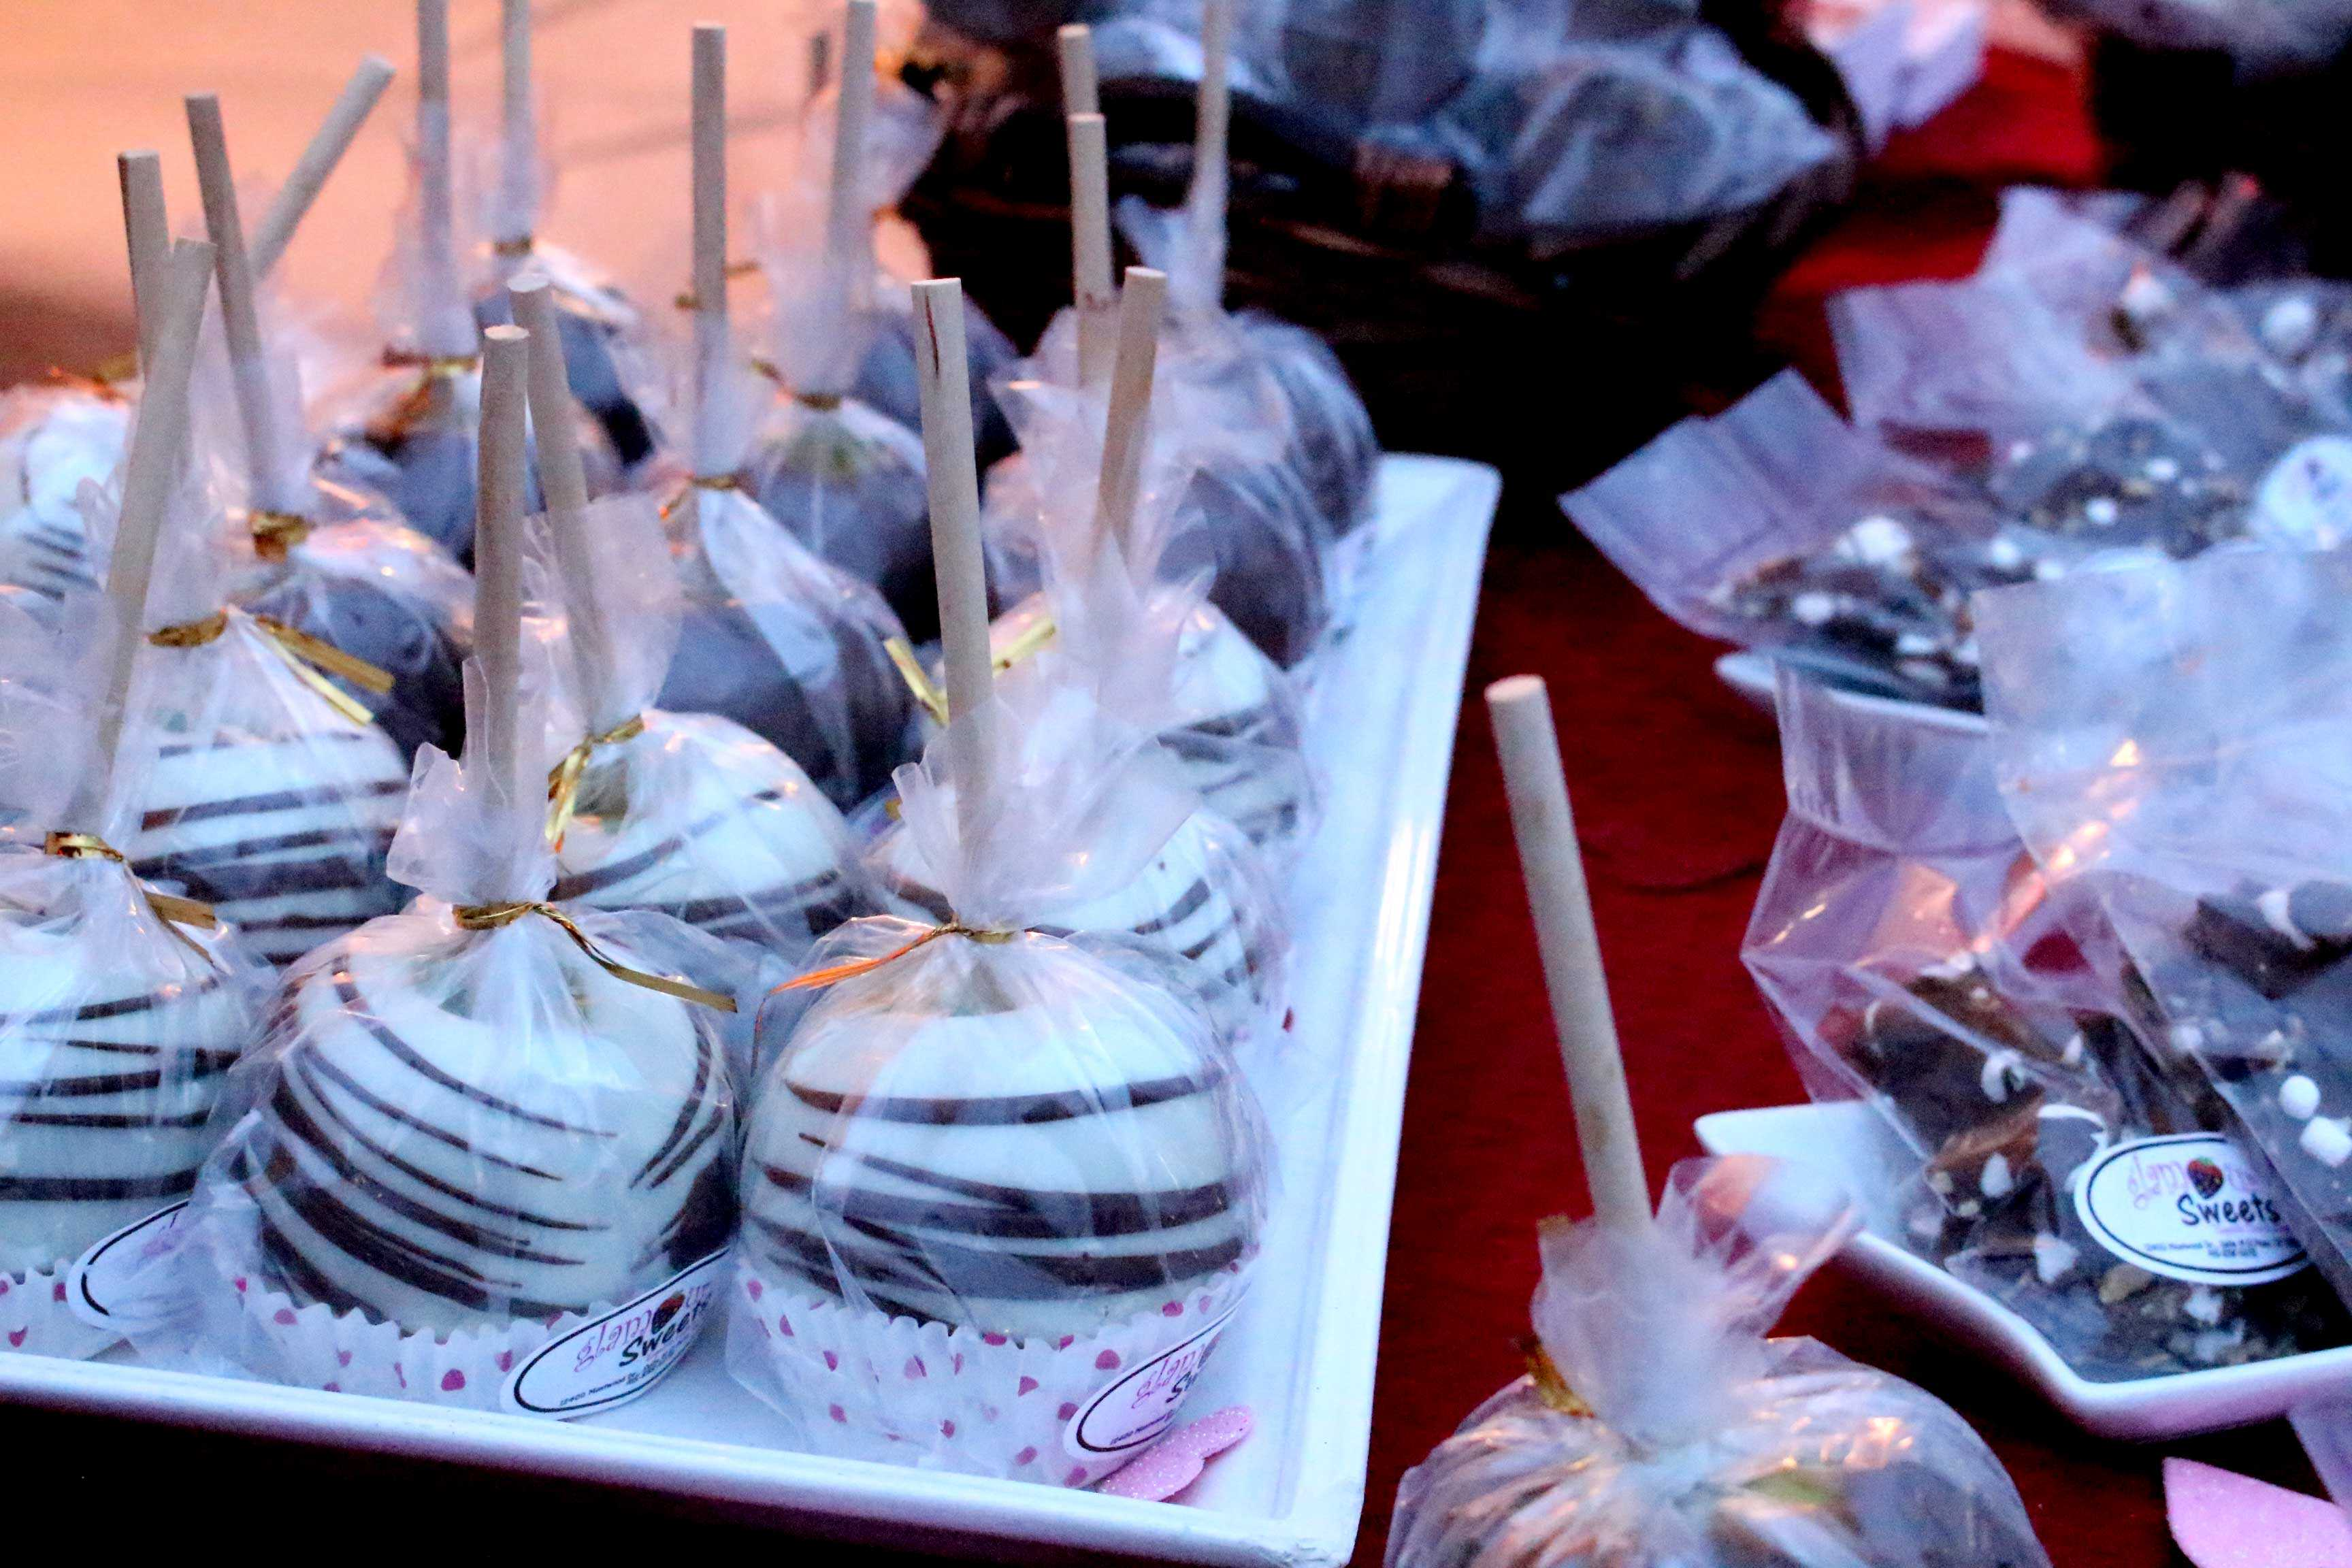 The fifth annual 'A Chocolate Affair' will be held on Thursday, Jan 28 at the Camino Real Hotel.